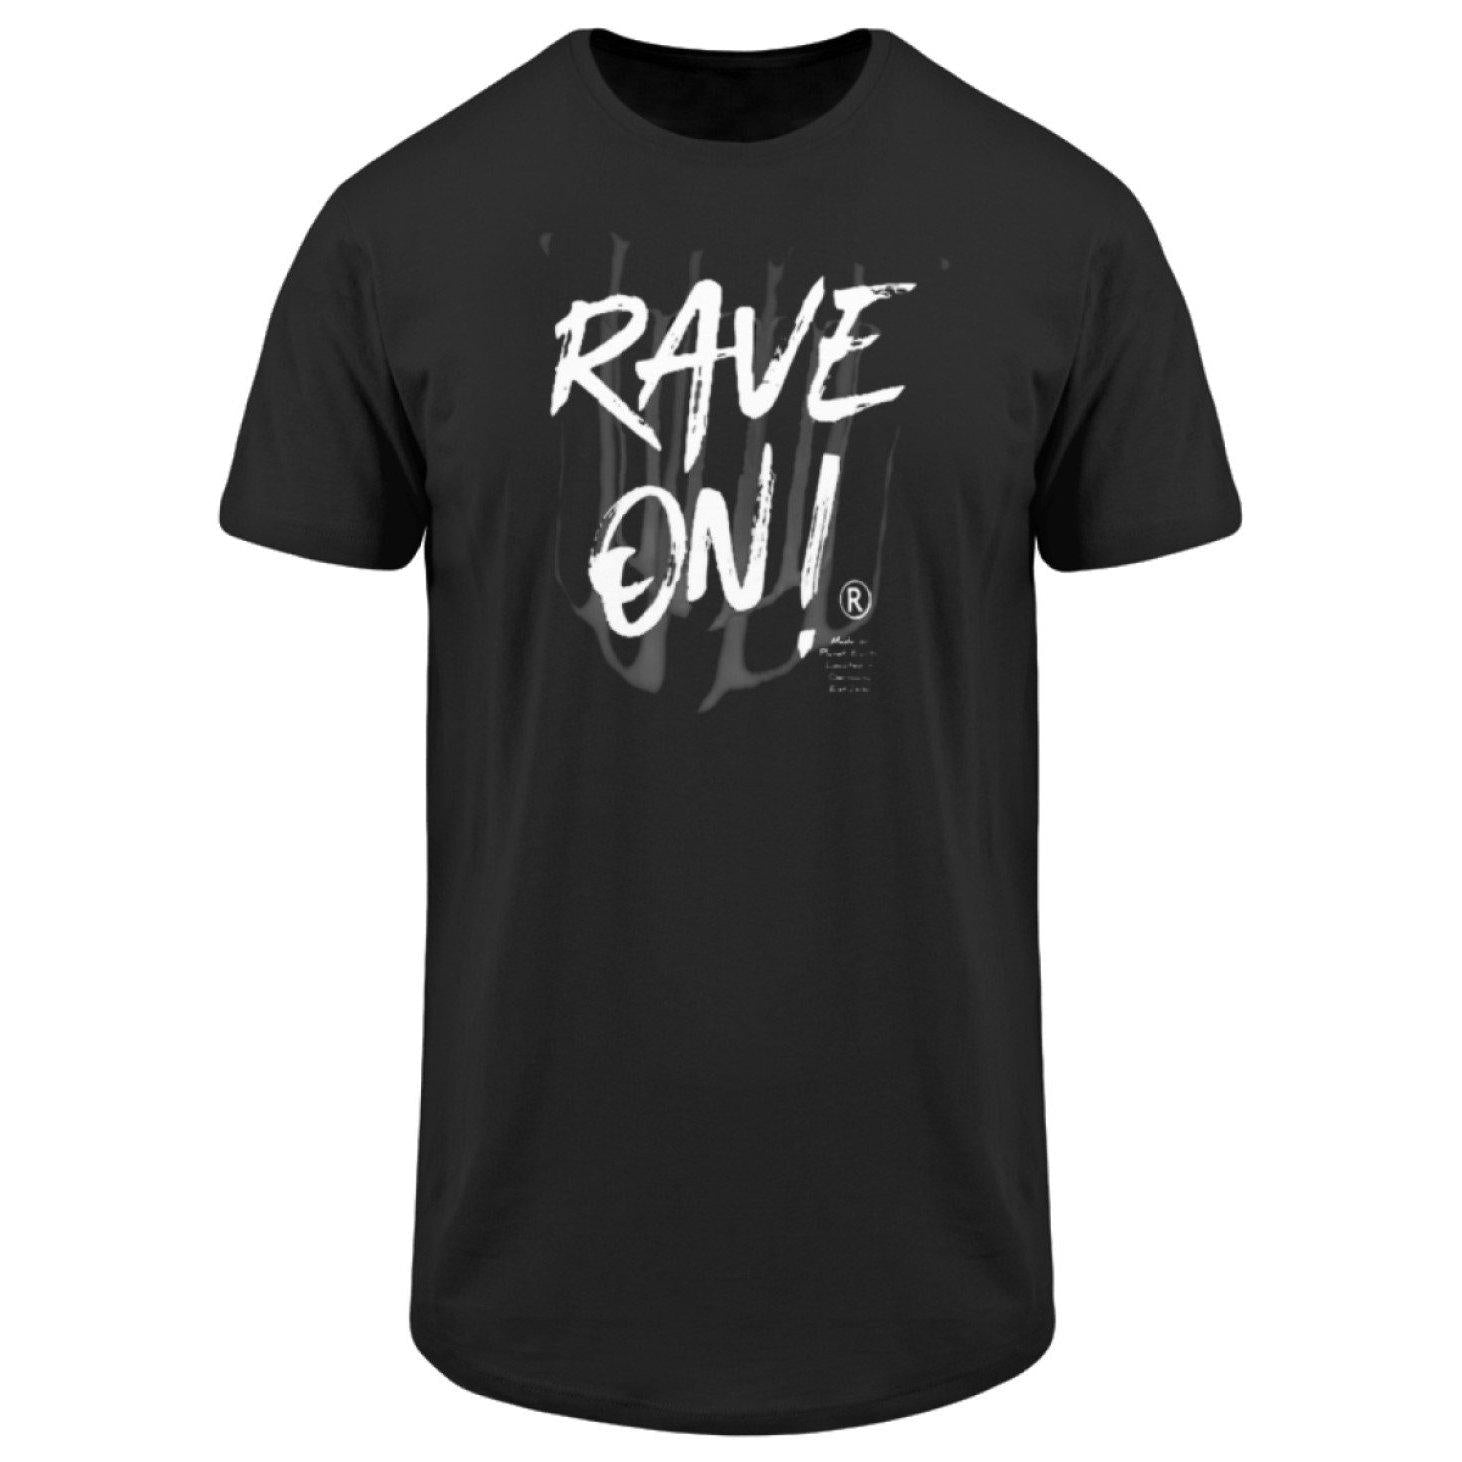 Rave On!® - Made On Planet Earth B2k20 - Herren Long Tee Men Long Tee Black / S - Rave On!® der Club & Techno Szene Shop für Coole Junge Mode Streetwear Style & Fashion Outfits + Sexy Festival 420 Stuff